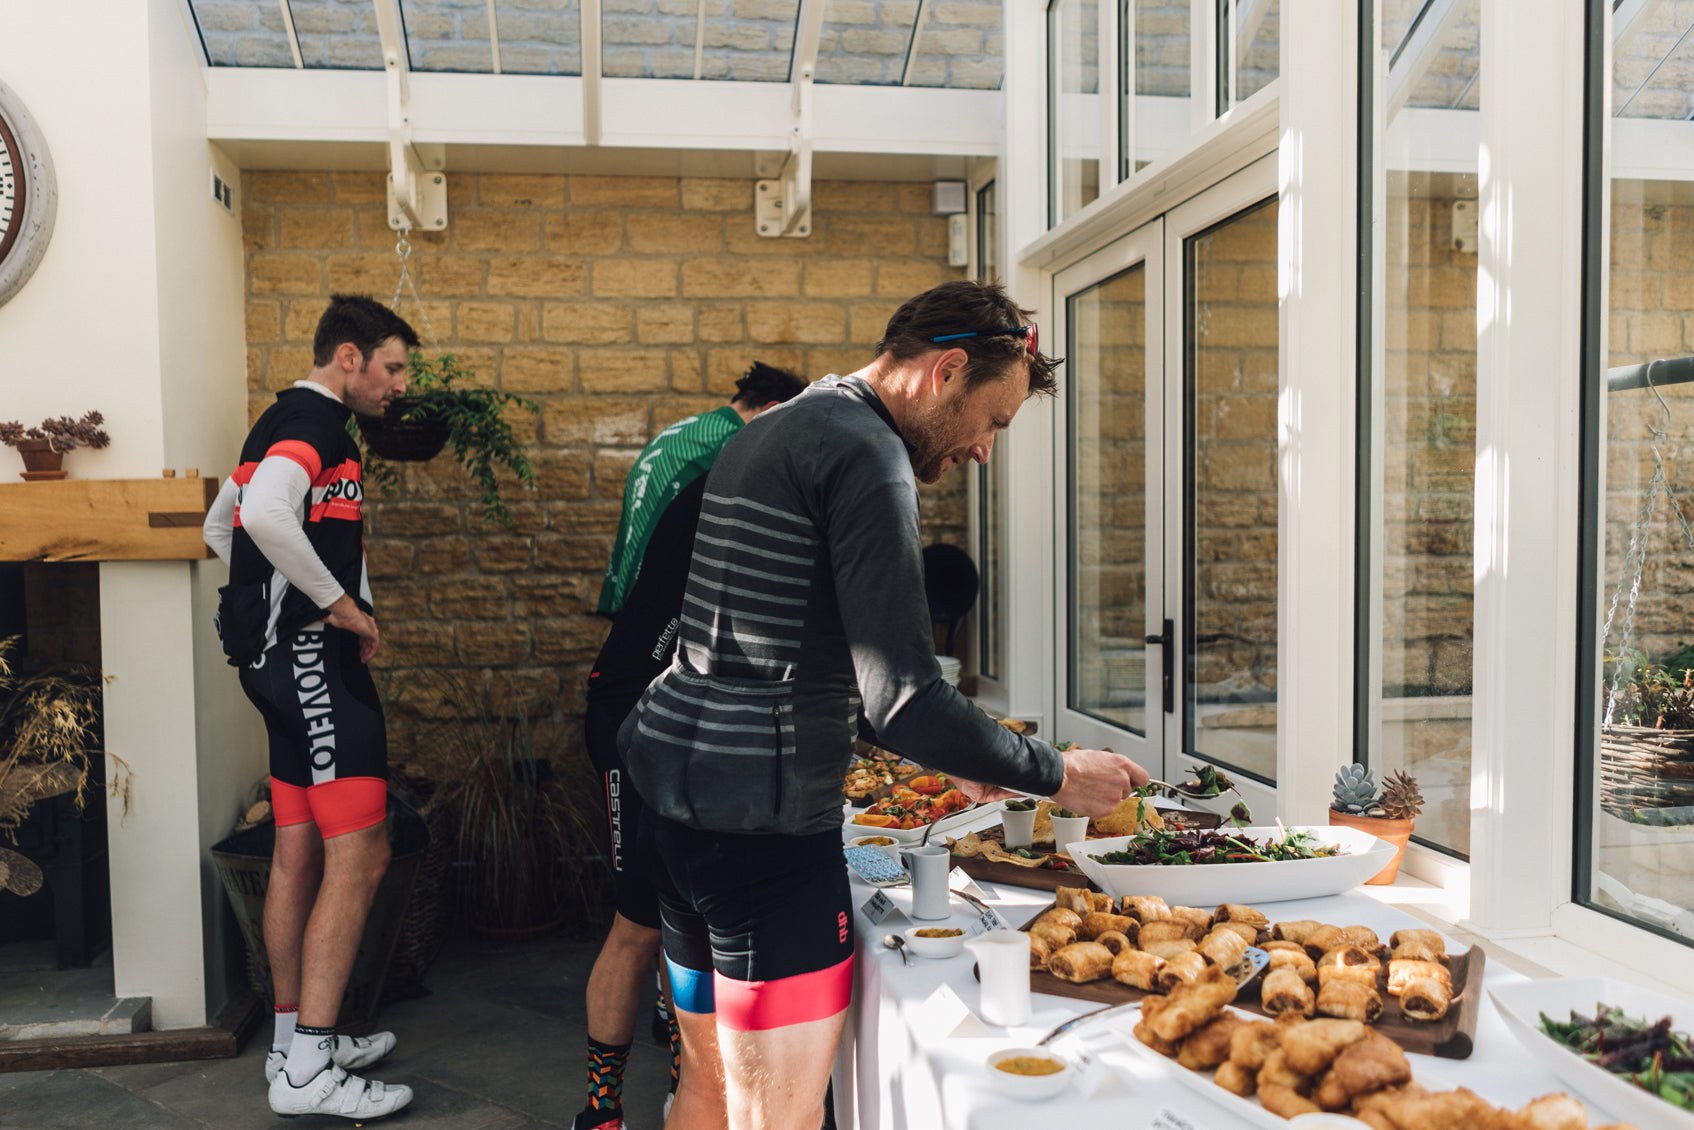 Corporate cycling event lunch at Bowcliffe Hall